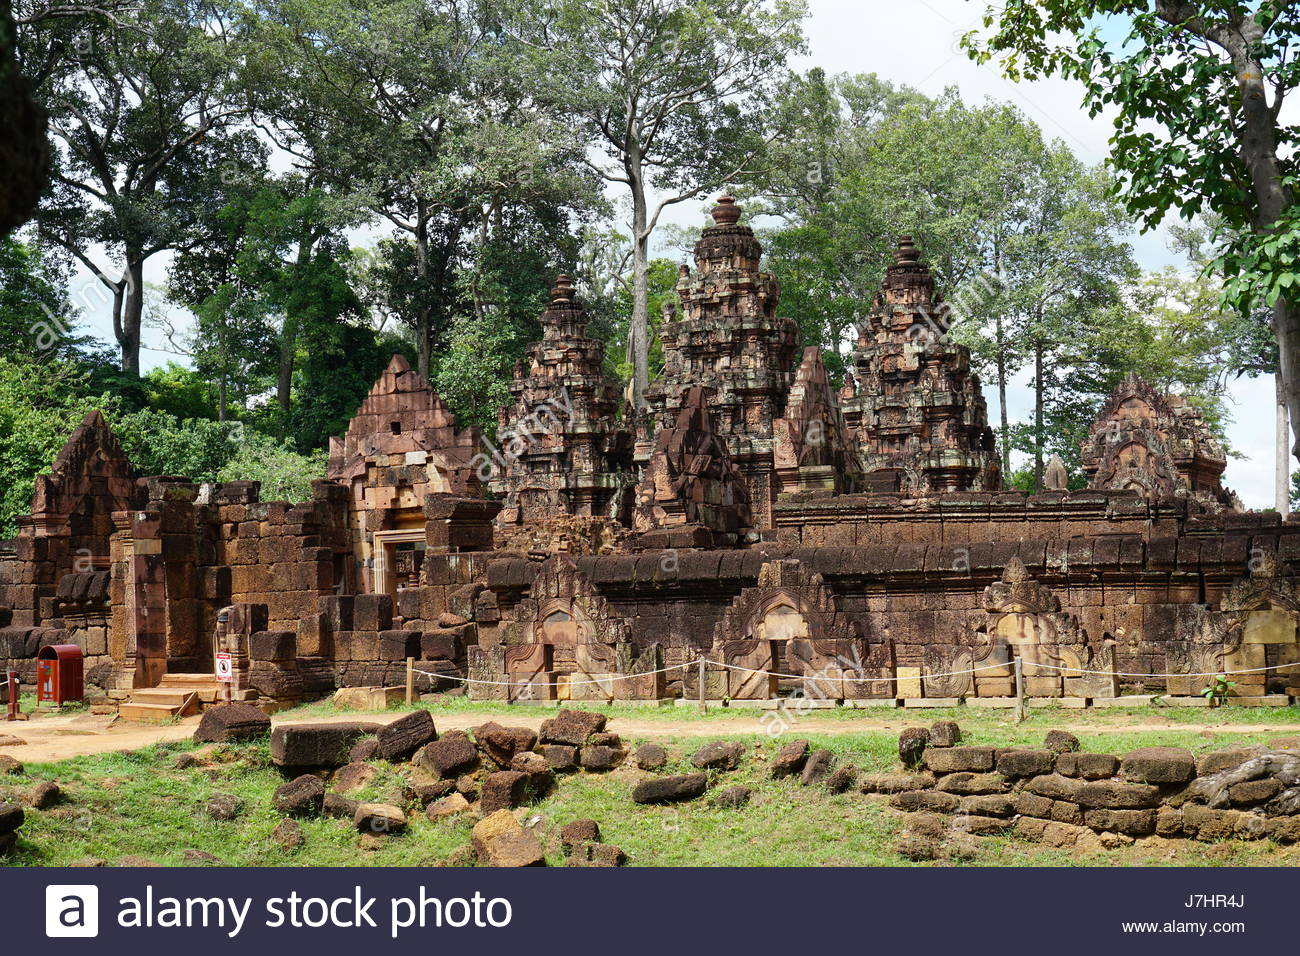 The mandapa and central tower, seen from the northeast. The intricate reliefs carving of red colored stone at Banteay - Stock Image